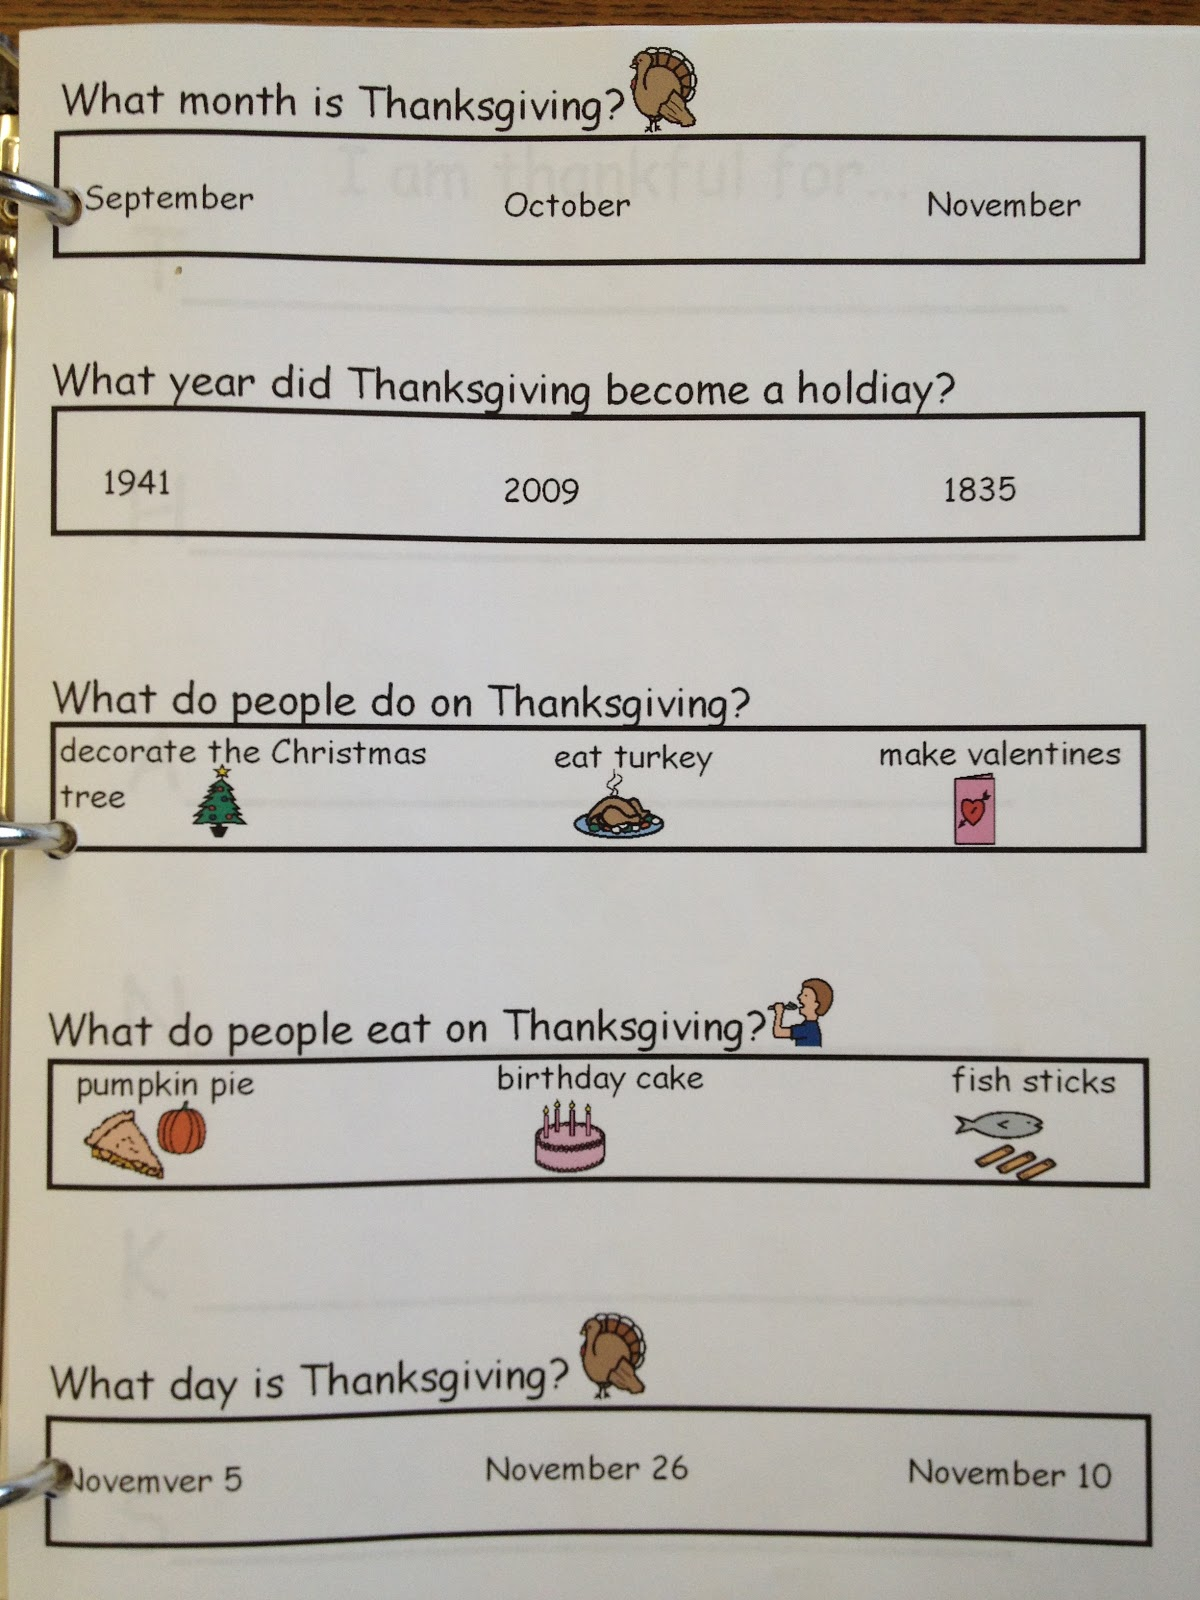 worksheet News 2 You Worksheets autism tank thanksgiving worksheets from news 2 you and complete a comprehension worksheet this is an old one has the wrong date so i had to white it out switch it